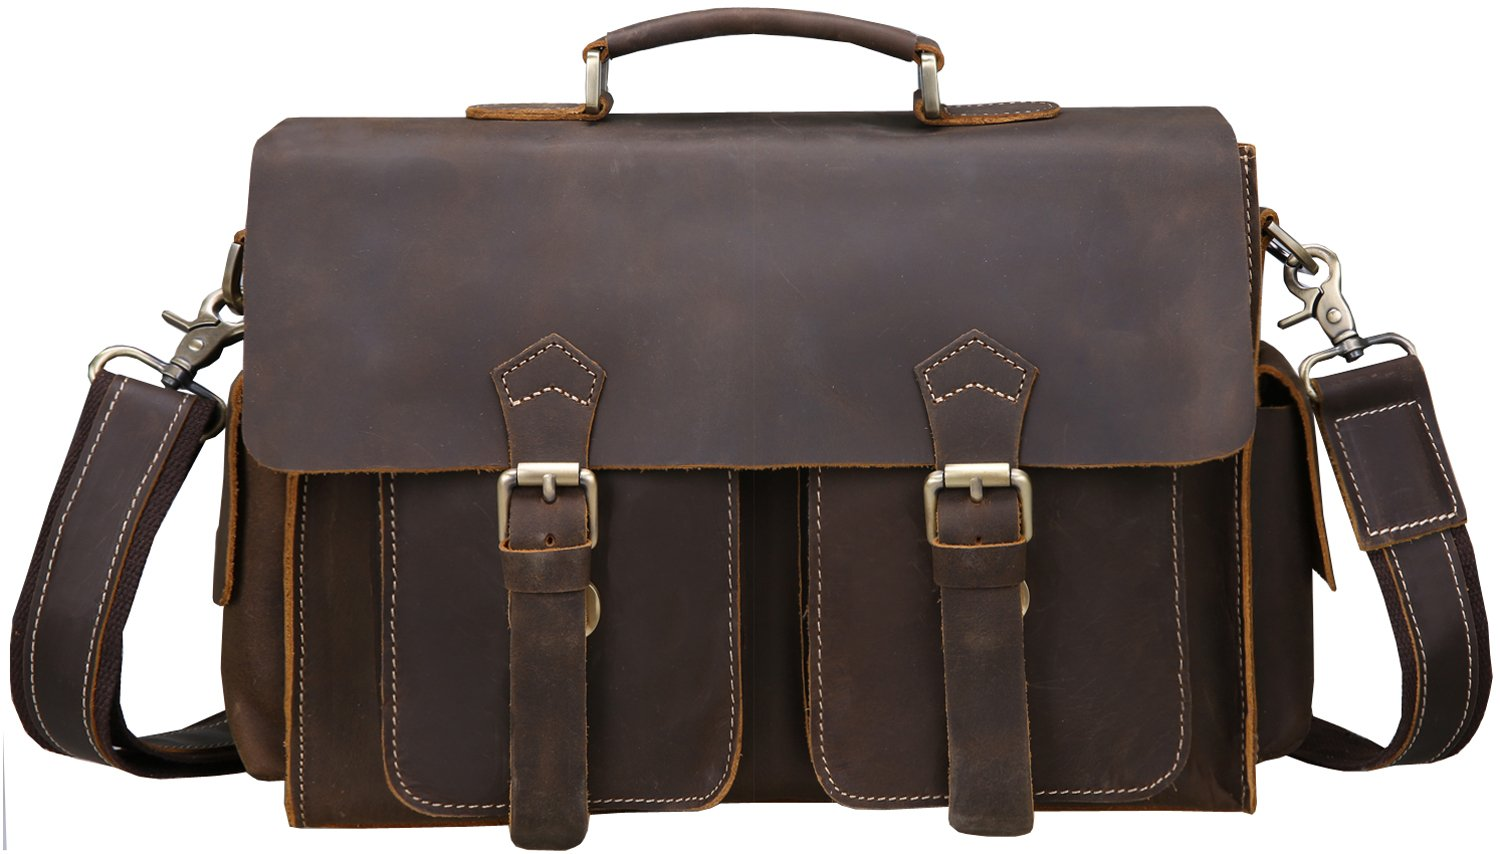 Iswee Vintage Leather Messenger Bag 13.3'' Laptop Briefcase Shoulder Bag for Men by Iswee (Image #2)